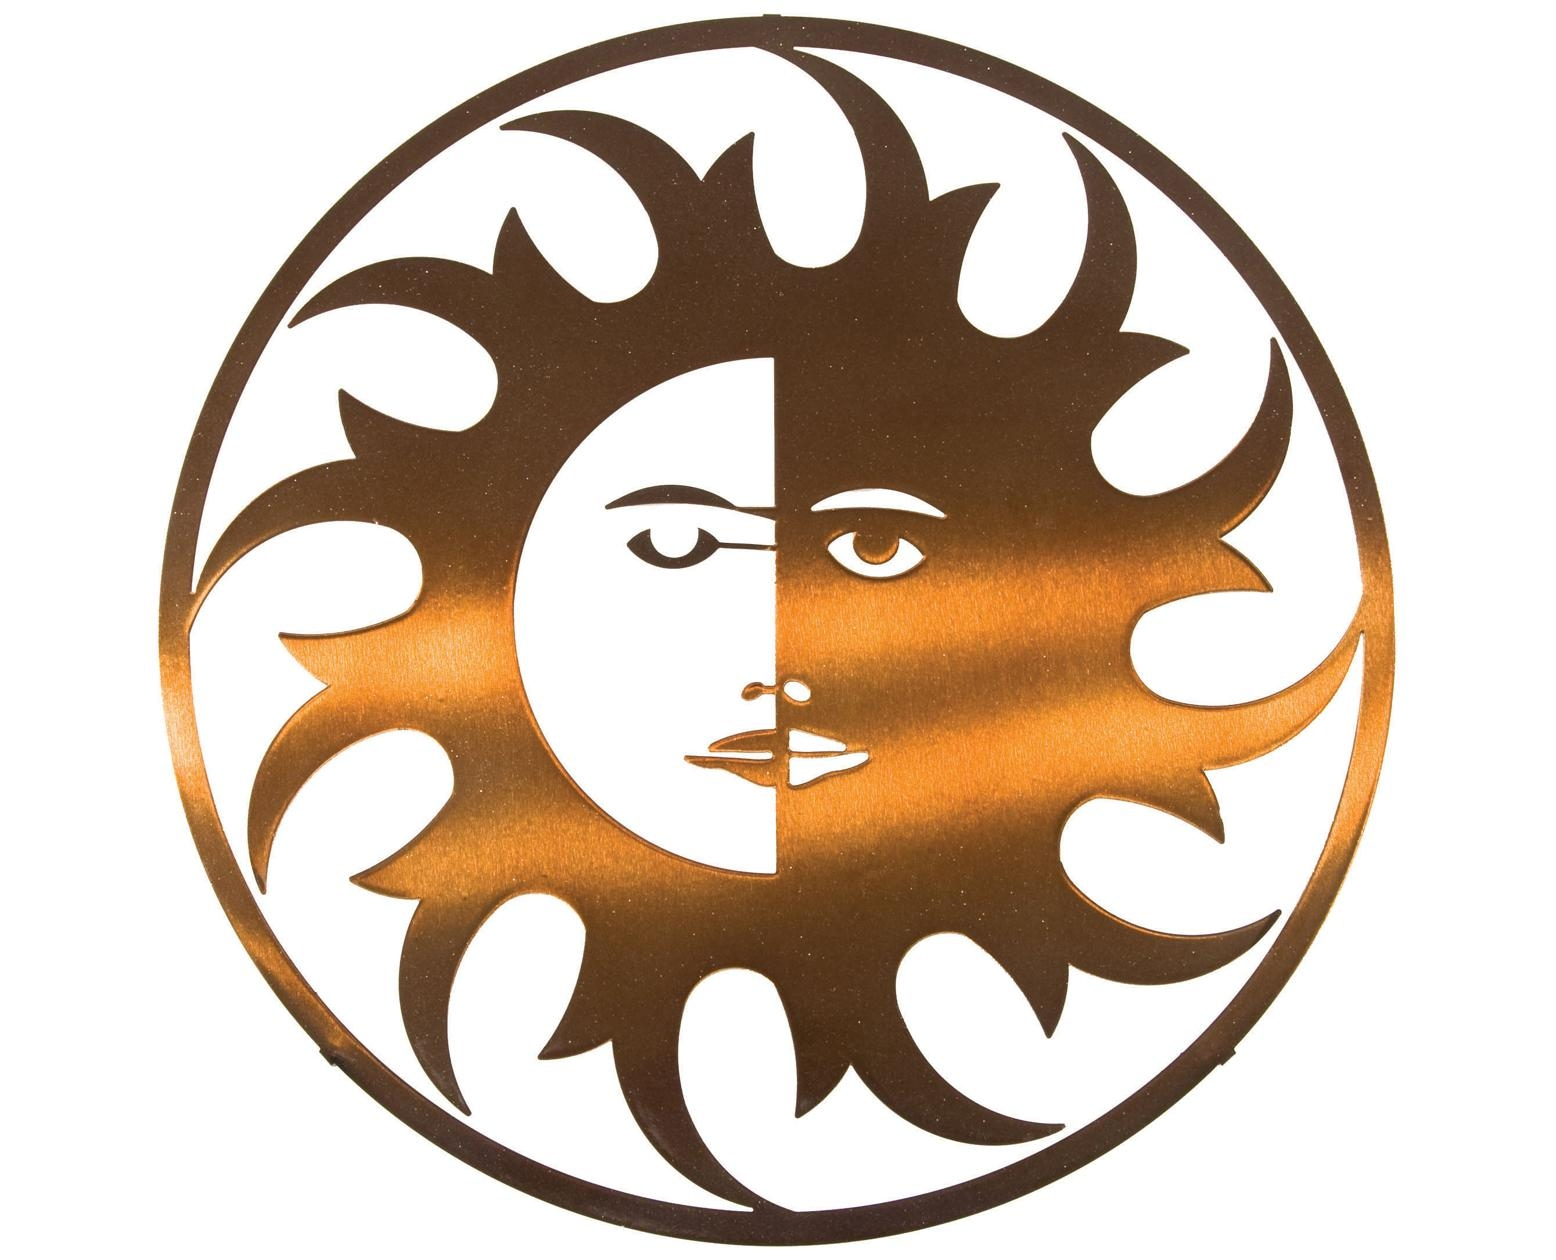 Cozy Sun Moon Stars Metal Wall Art Copper Patina Sun Face Metal Intended For Sun And Moon Metal Wall Art (Image 10 of 20)